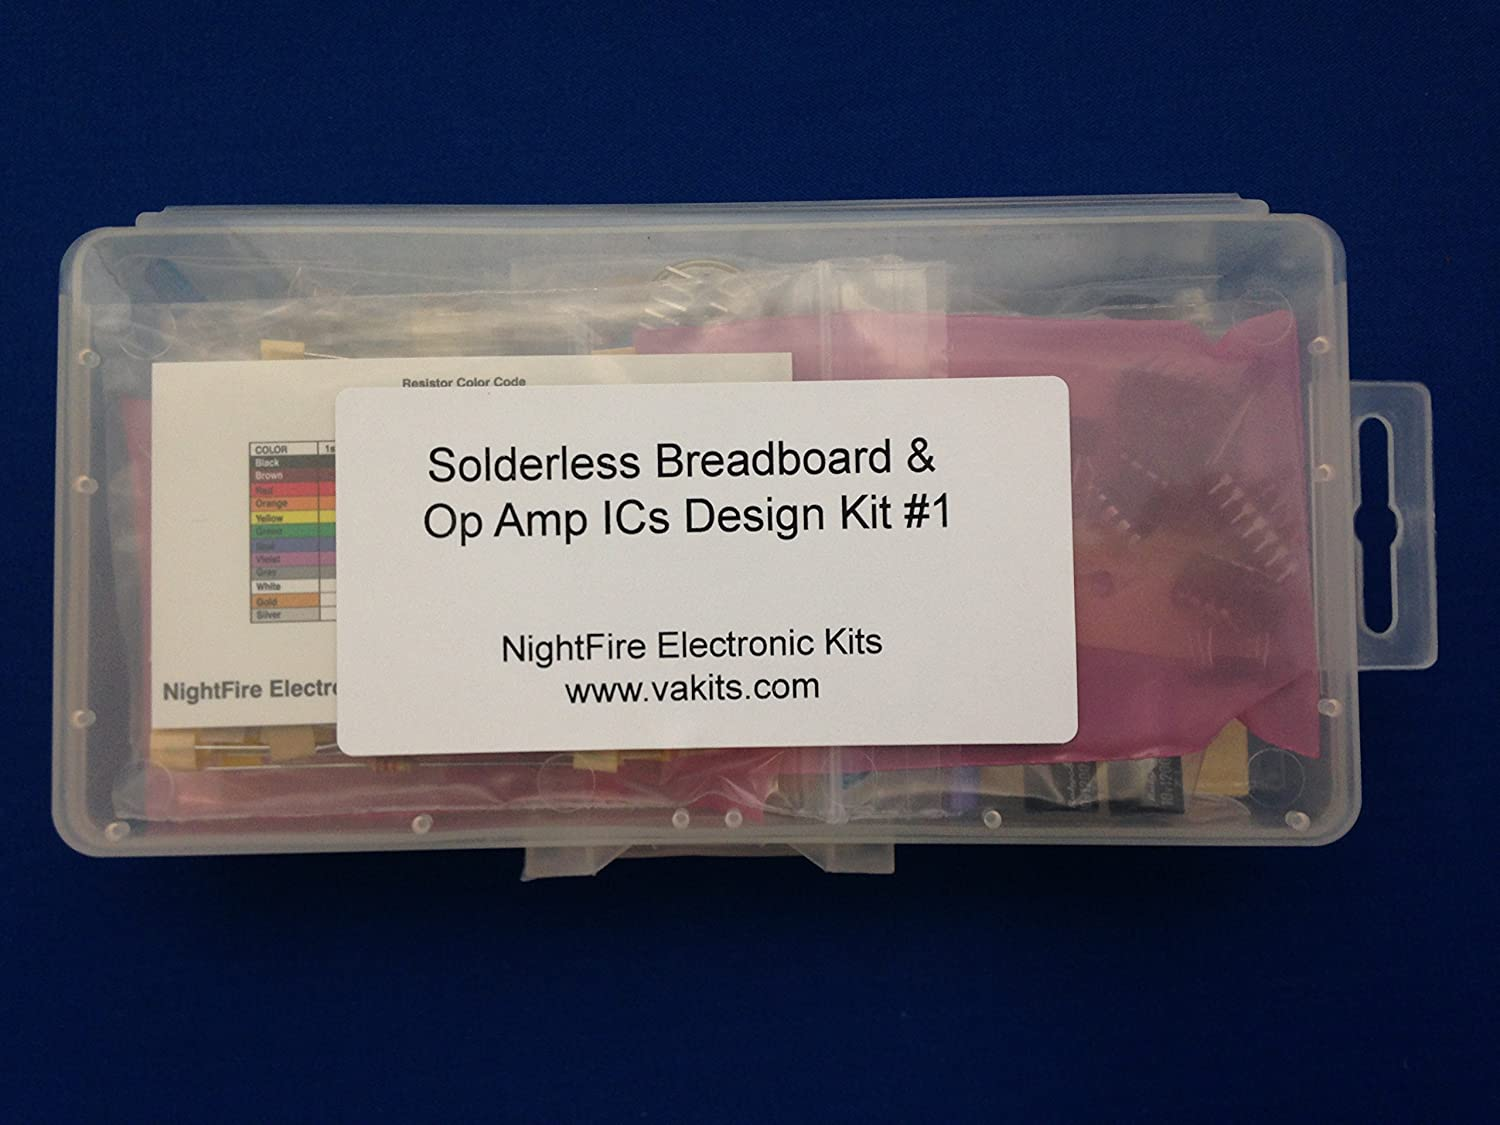 Solderless Breadboard Op Amp Ics Design Kit 1 Toys Family Series Amplifier Type General Purpose Number Of Circuits Games